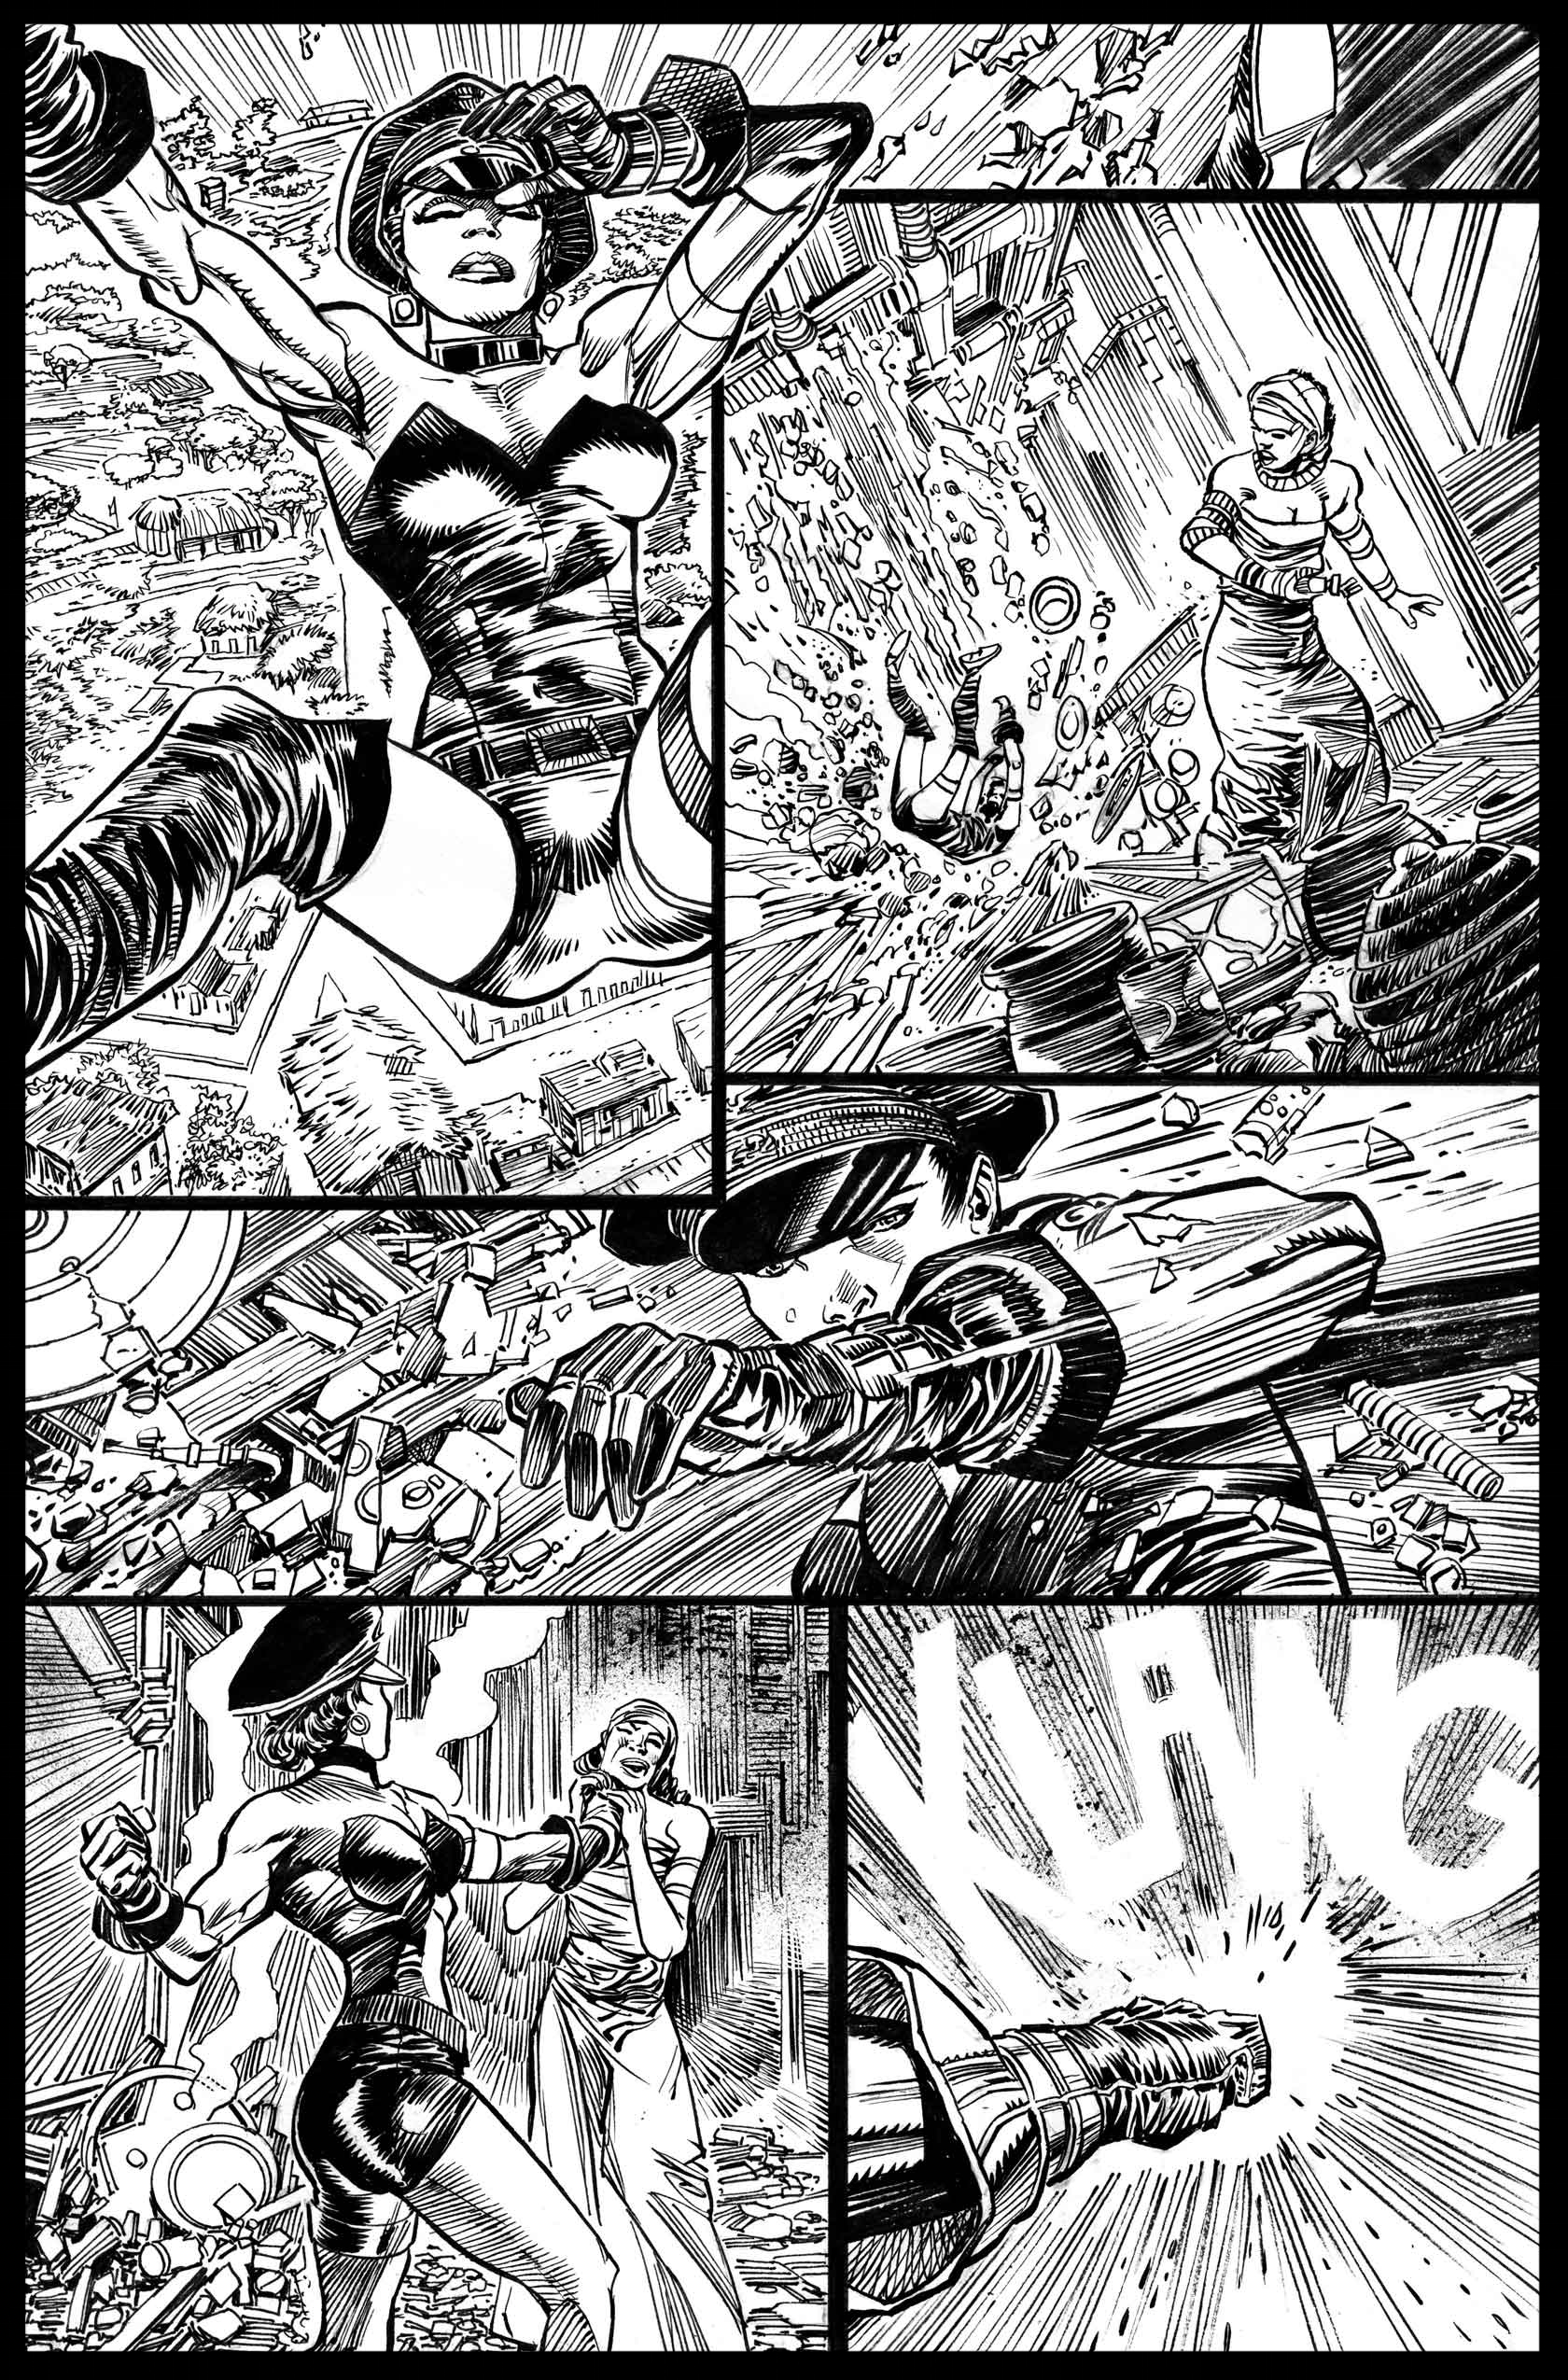 Flags of Our Fathers #3 - Page 11 - Pencils & Inks